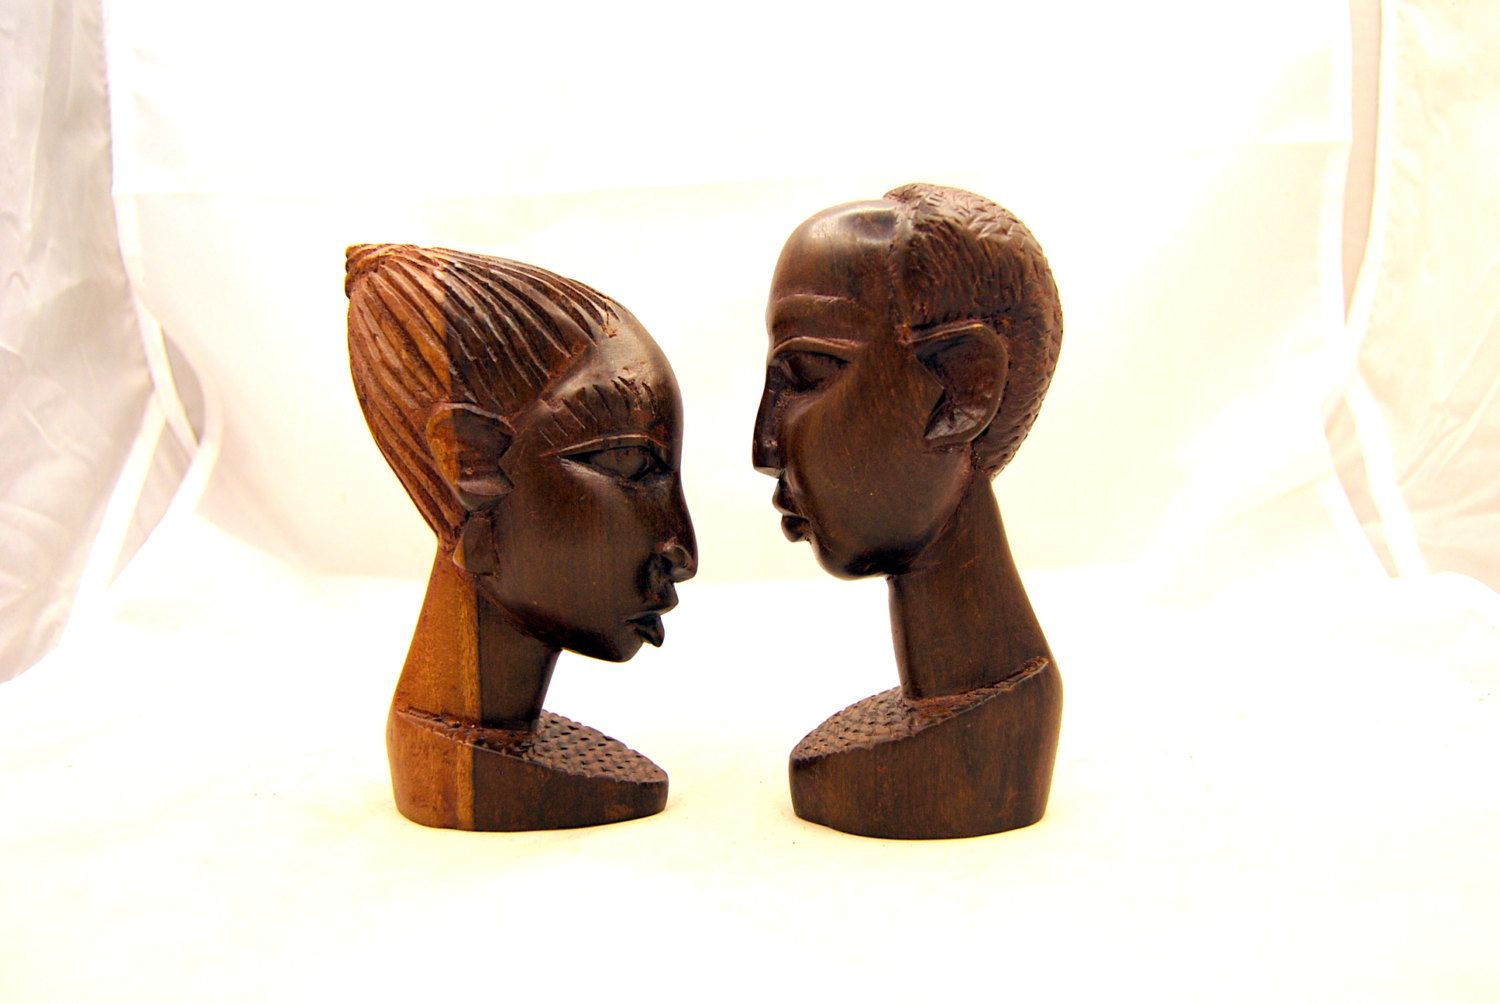 African Wooden Wall Art Two Vintage Carved Heads Carved Wood Heads Native